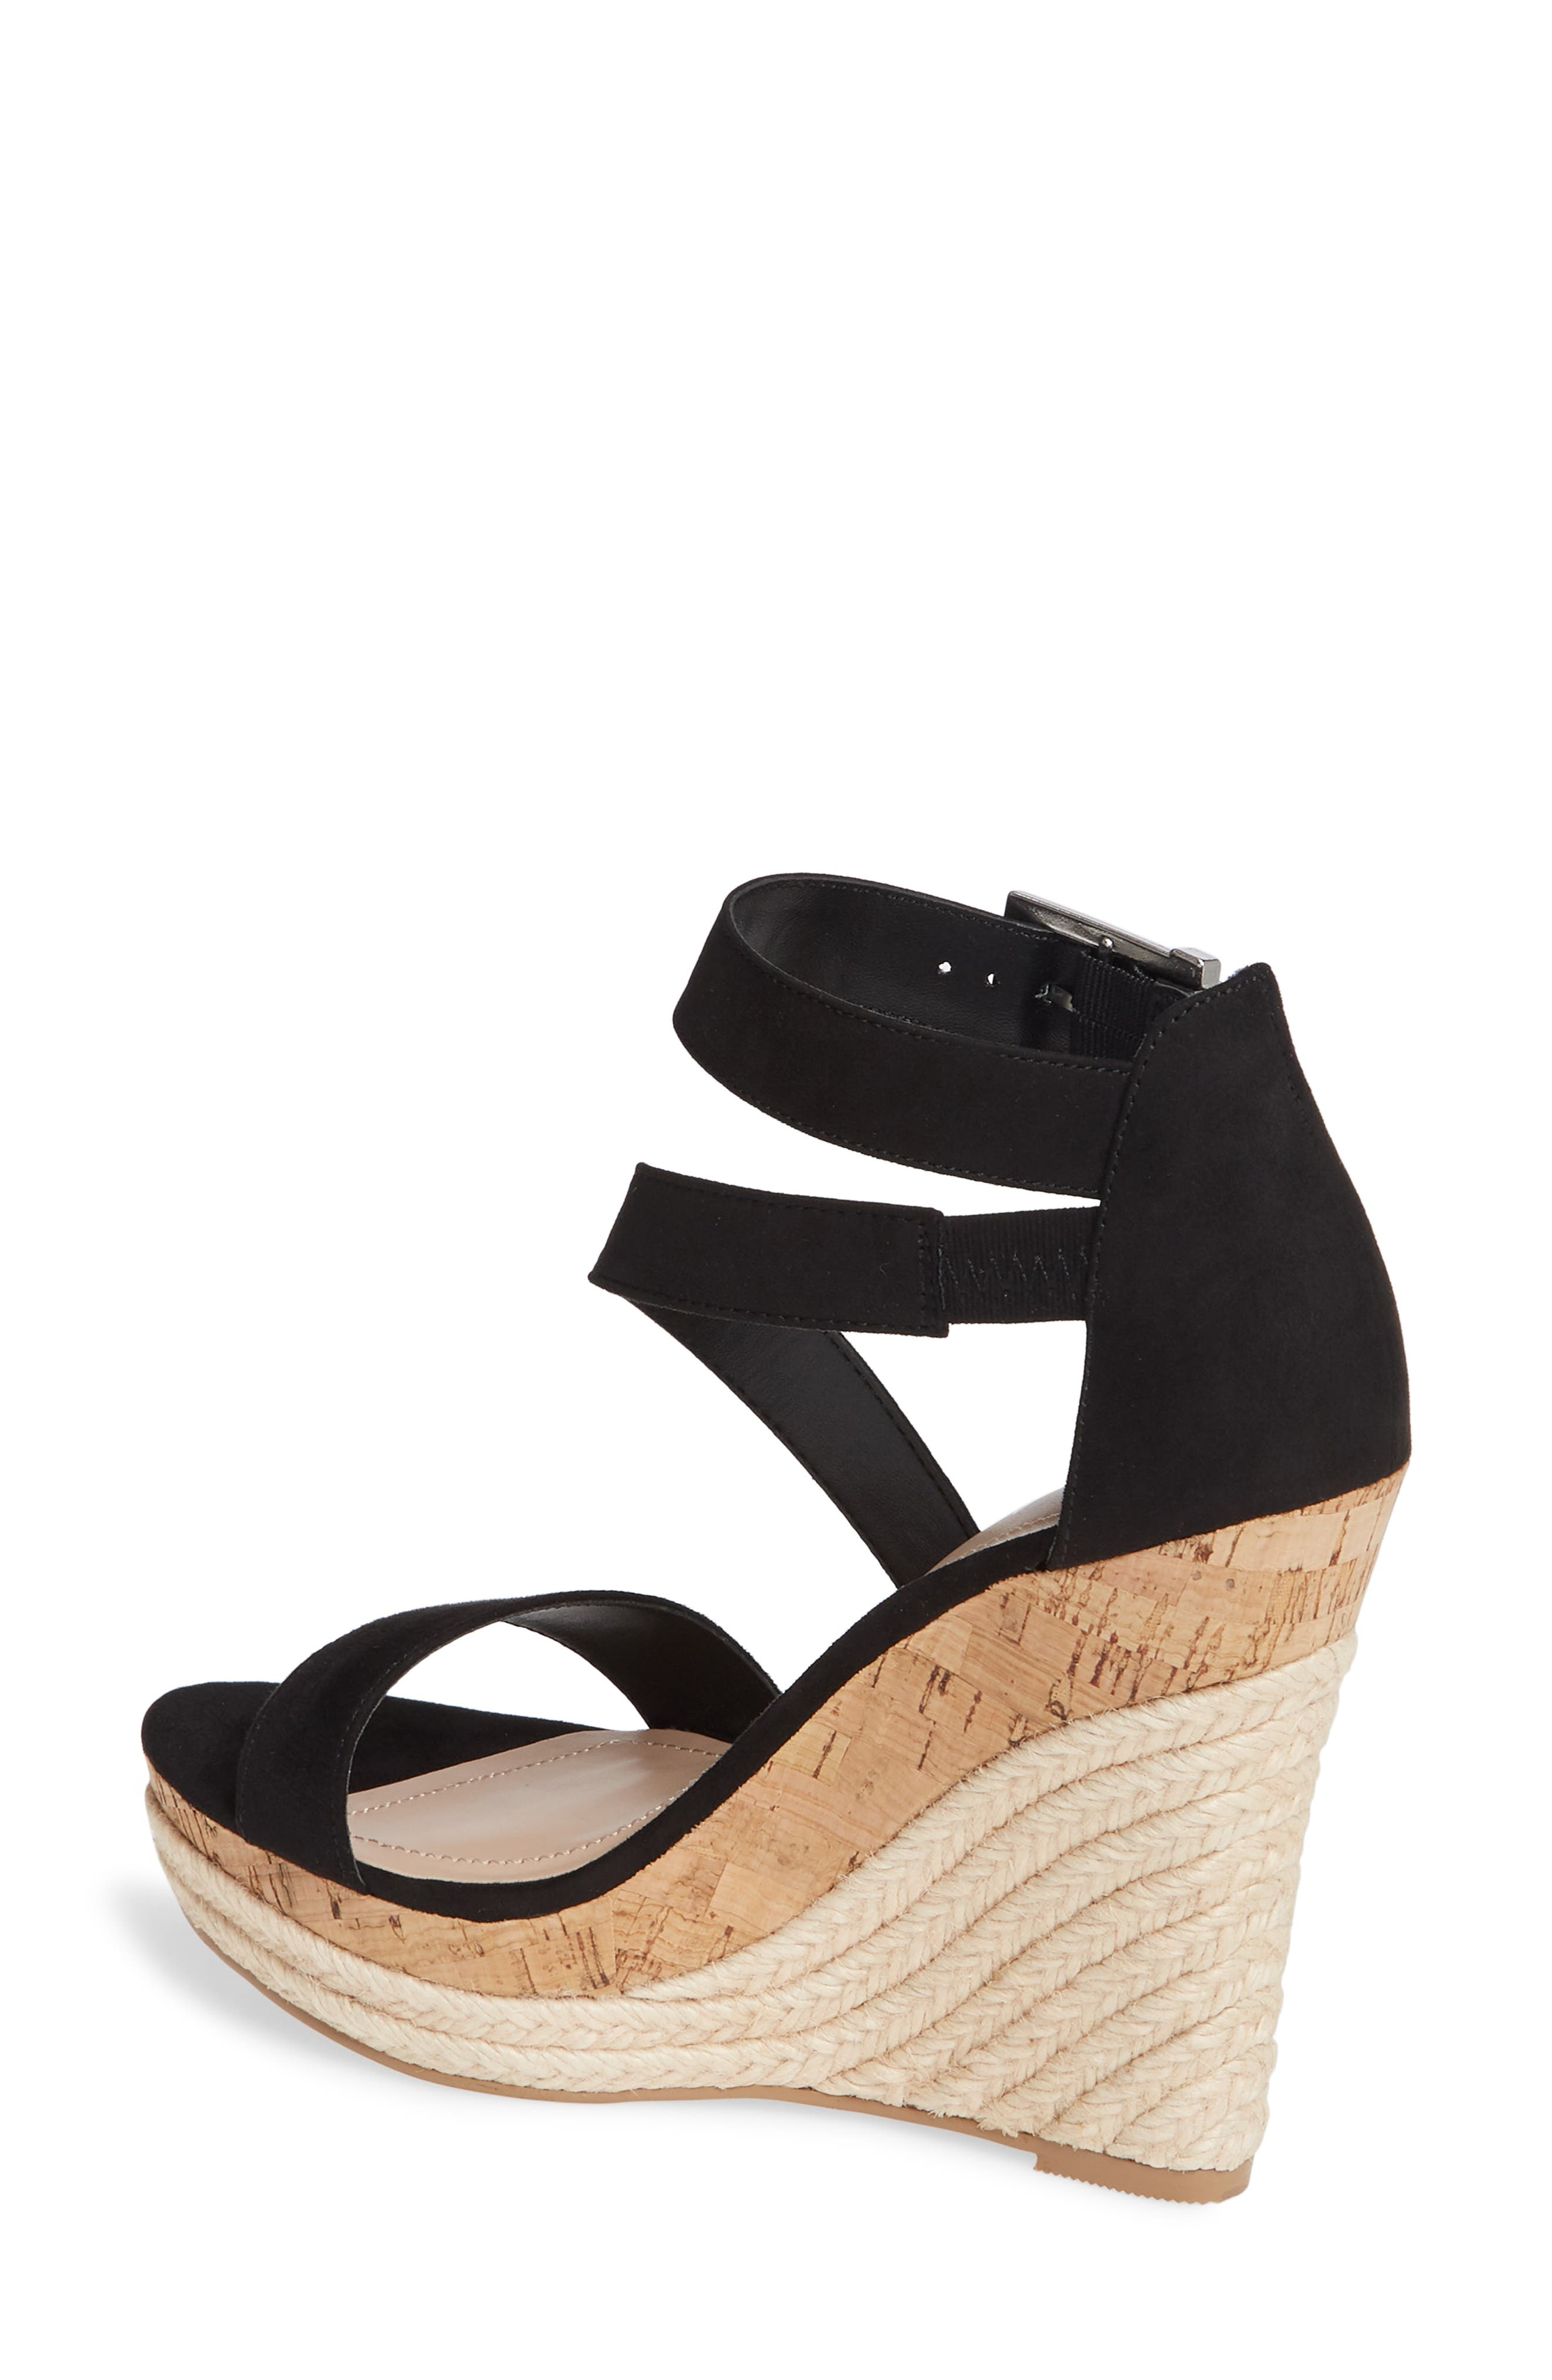 CHARLES BY CHARLES DAVID, Adrielle Asymmetrical Platform Wedge Sandal, Alternate thumbnail 2, color, BLACK FABRIC